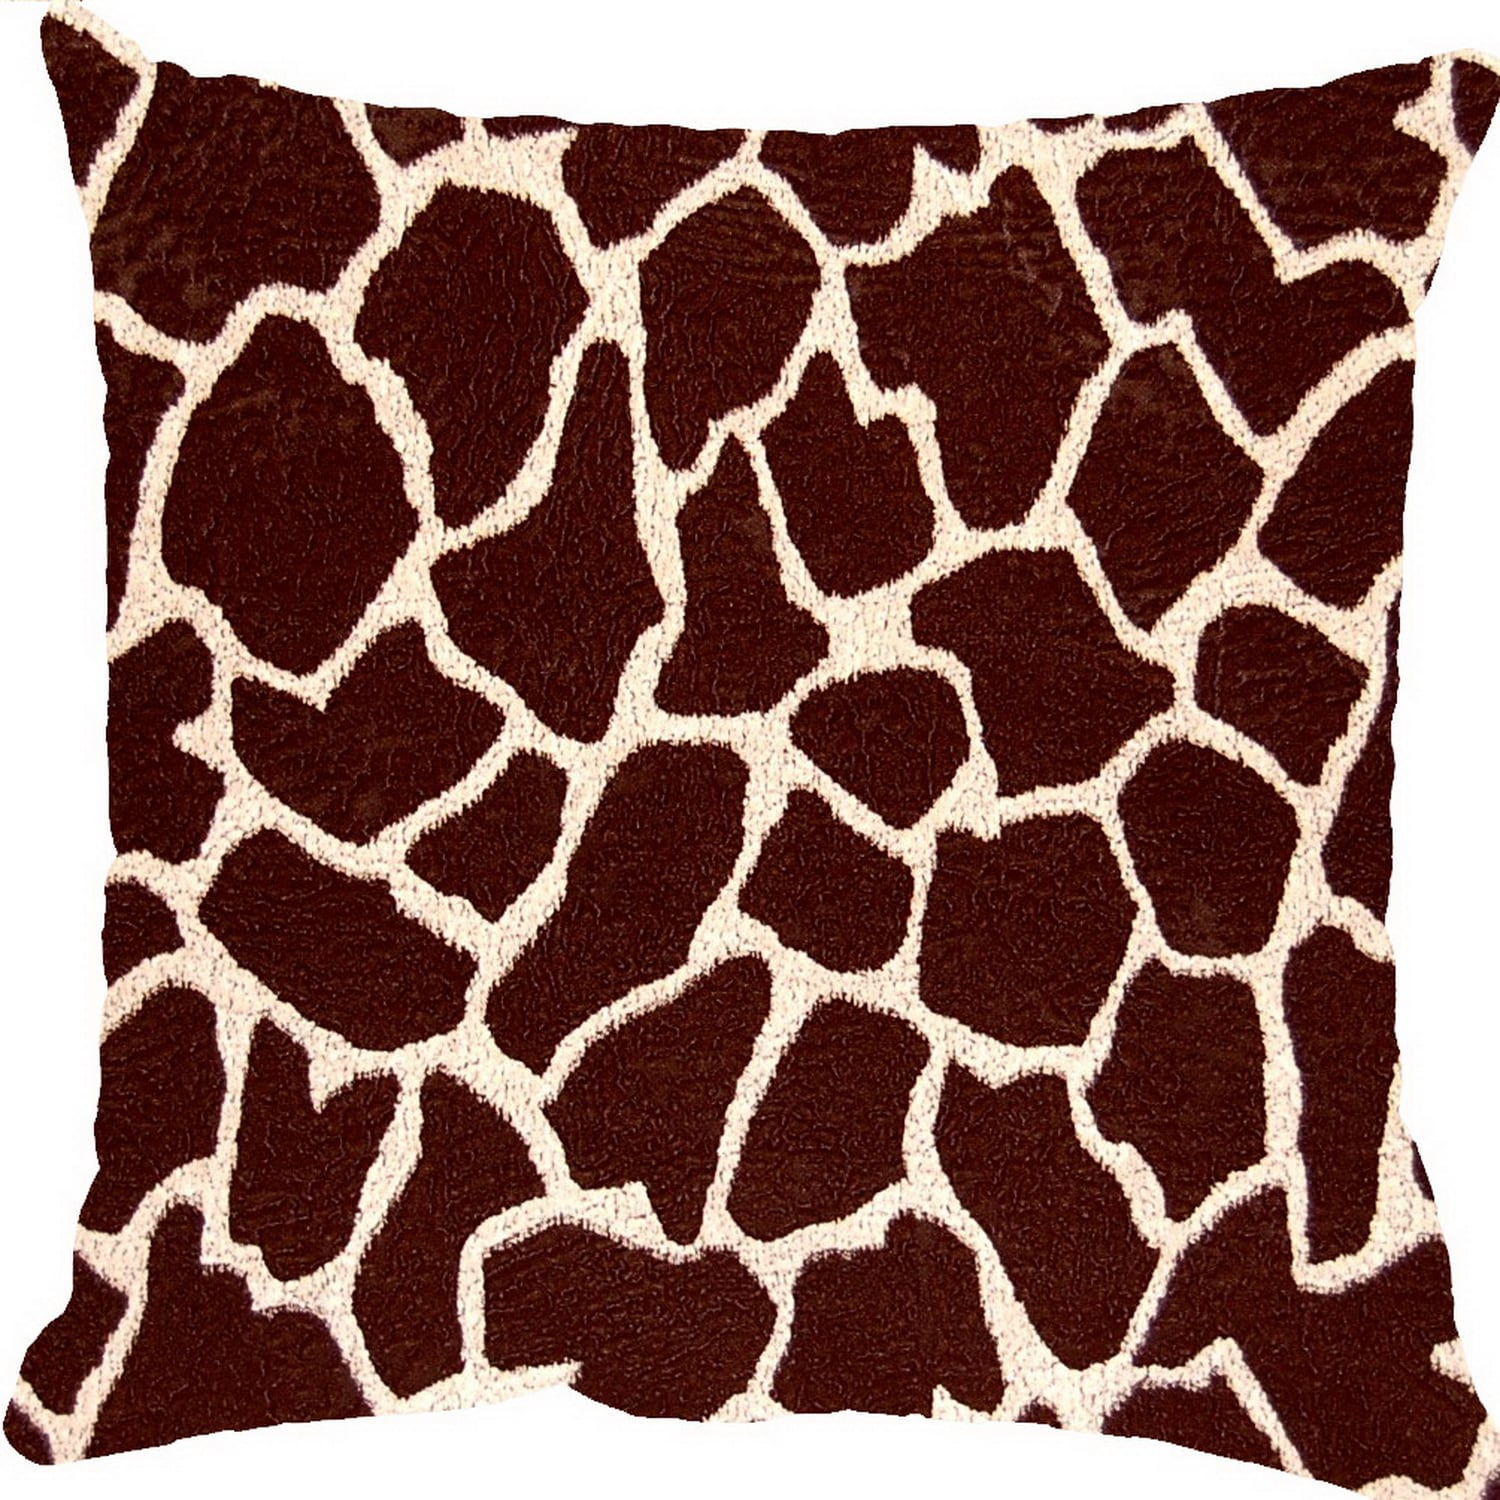 Fox Hill Trading Giraffe Bitter 17-inch Throw Pillows (Set of 2)